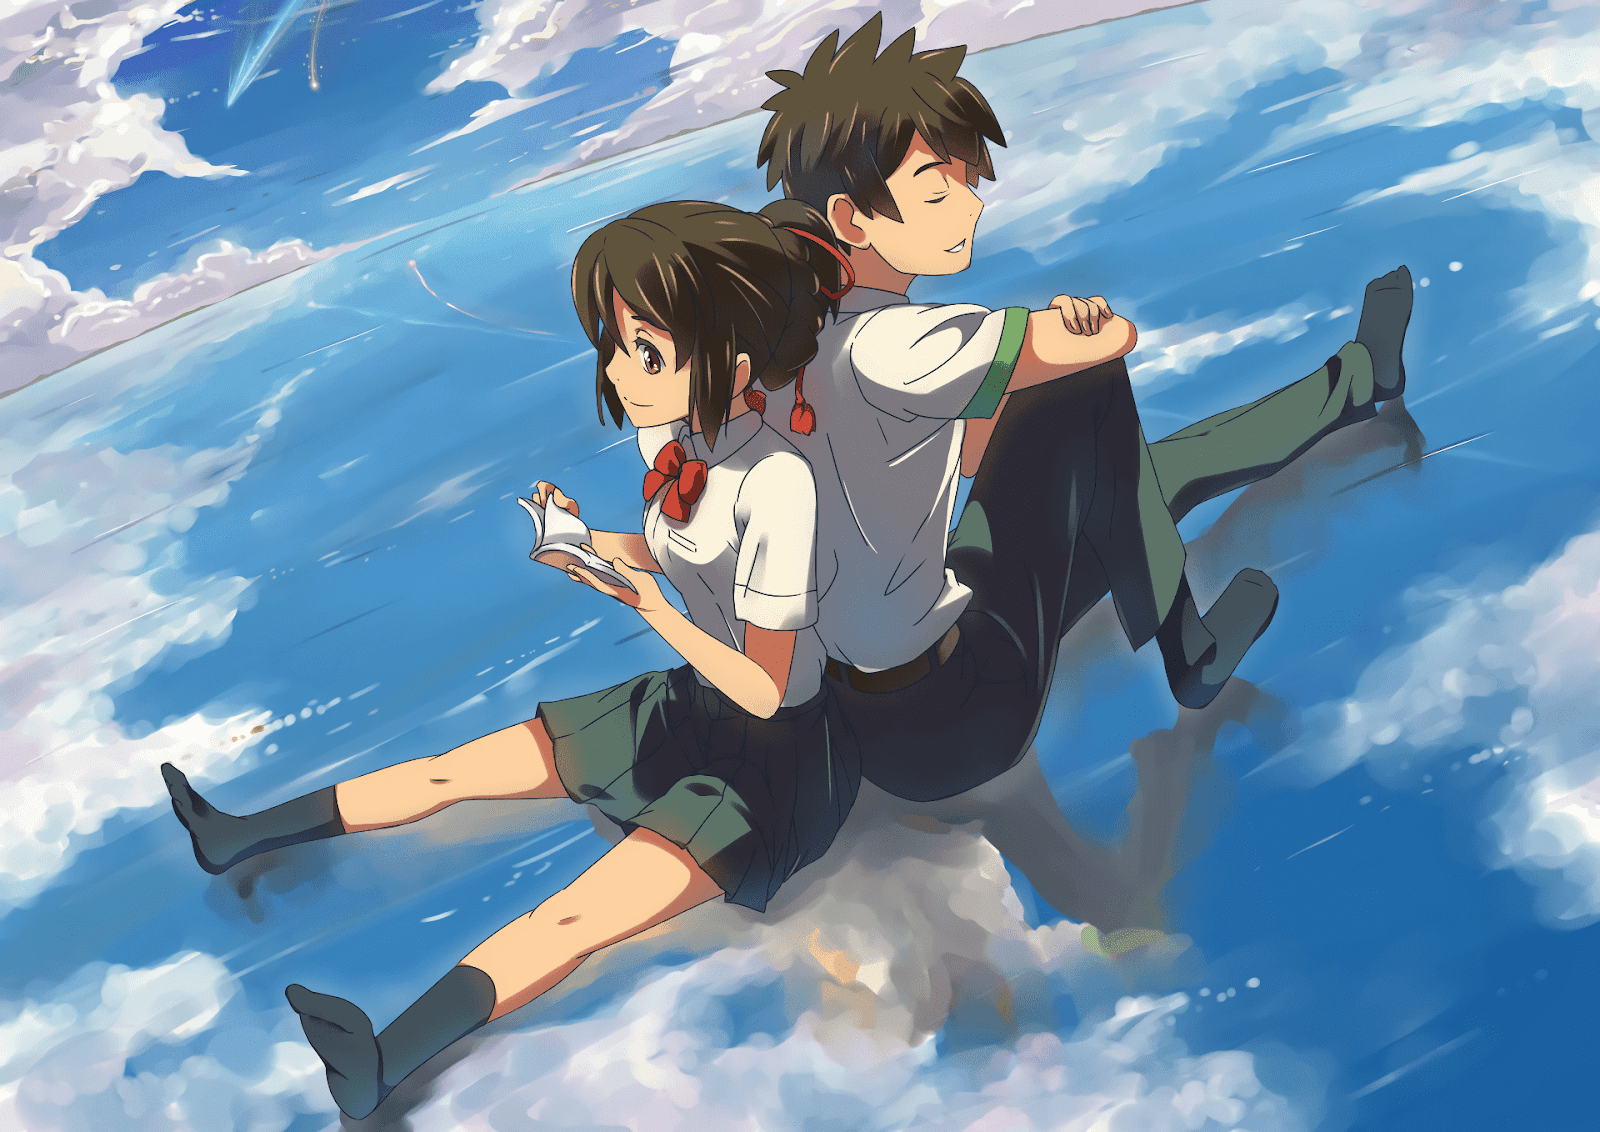 AowVN%2B%252818%2529 - [ Hình Nền ] Anime Your Name. - Kimi no Nawa full HD cực đẹp | Anime Wallpaper